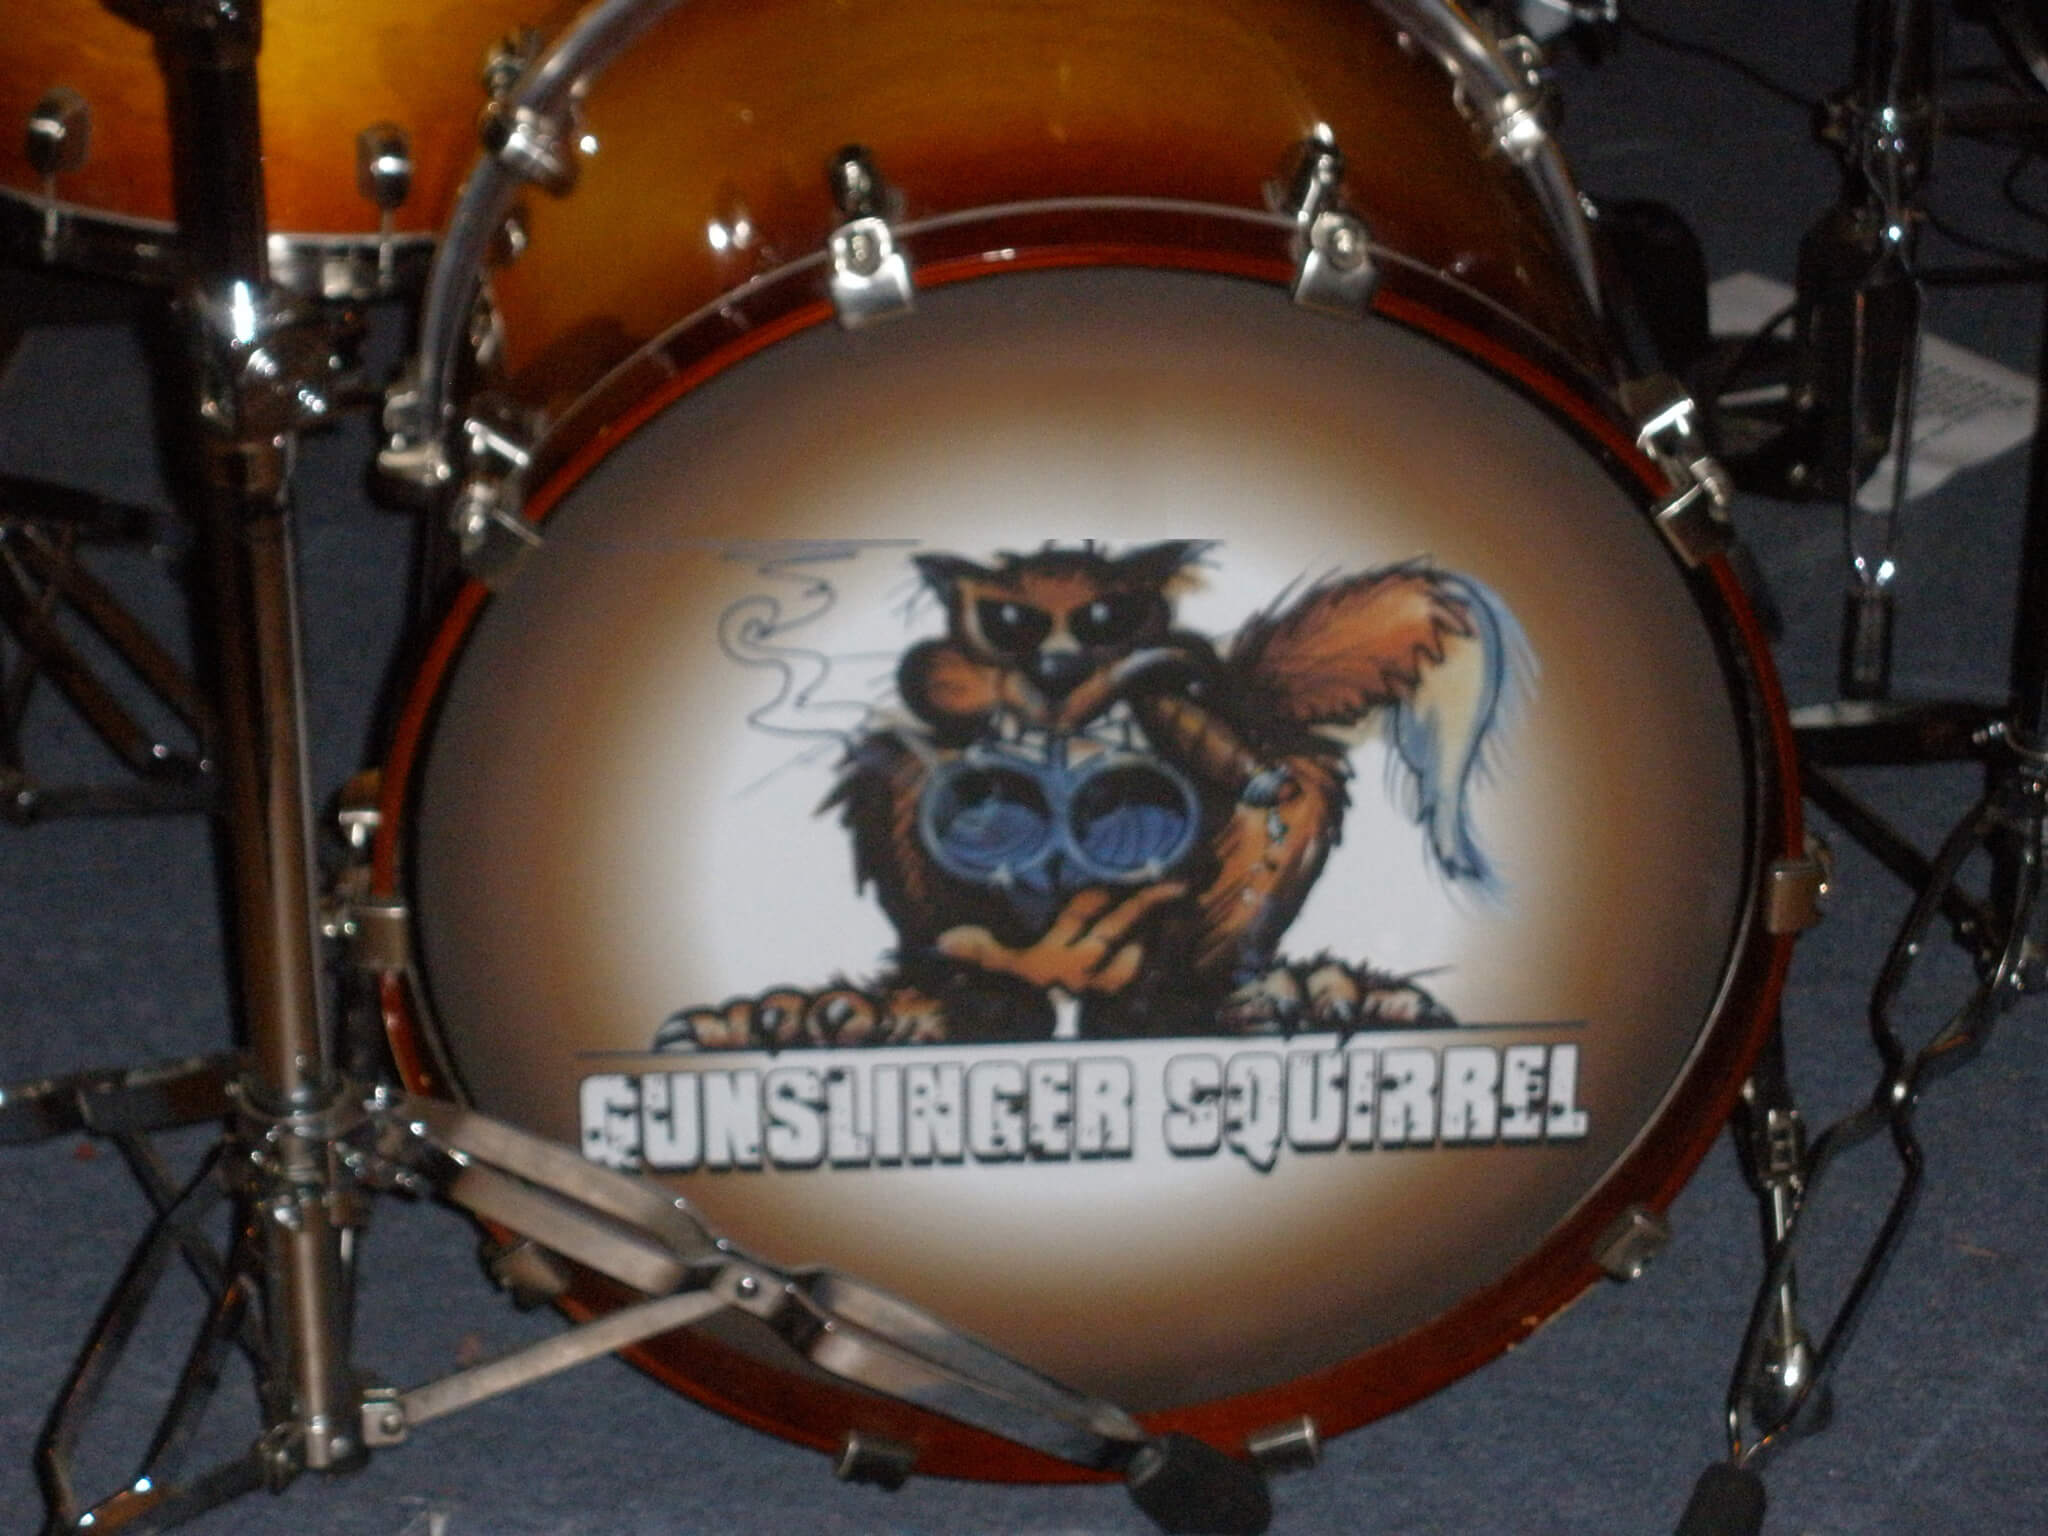 Gunslinger Squirrel, removable drum decal, kick drum skin, full color drum decal, drum skin, sale, cheap price, die-cut, die cut vinyl decals, reusable static cling drum decal, music bands, local band